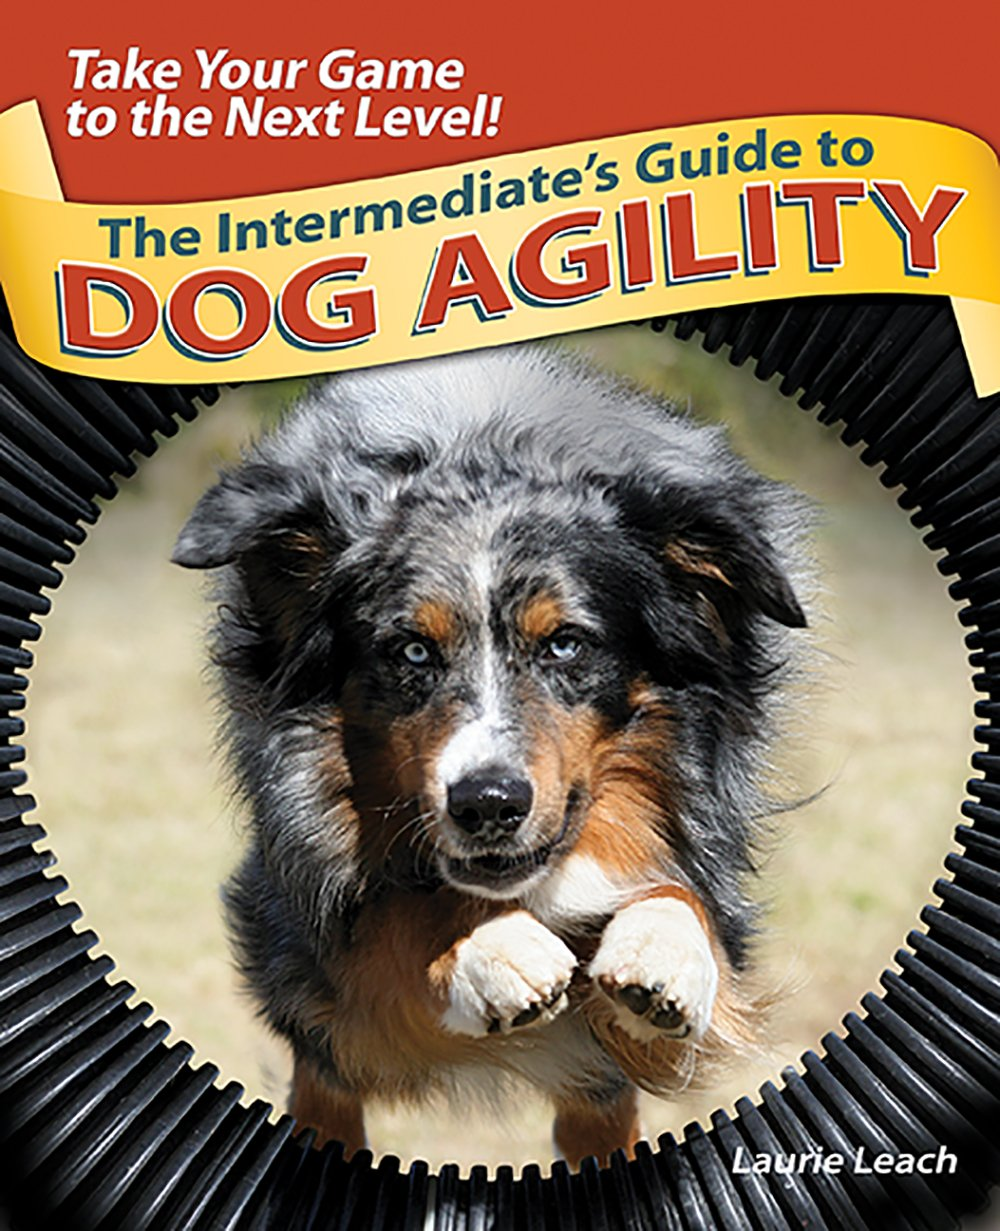 The Intermediate's Guide to Dog Agility: Take Your Game to the Next Level! by TFH